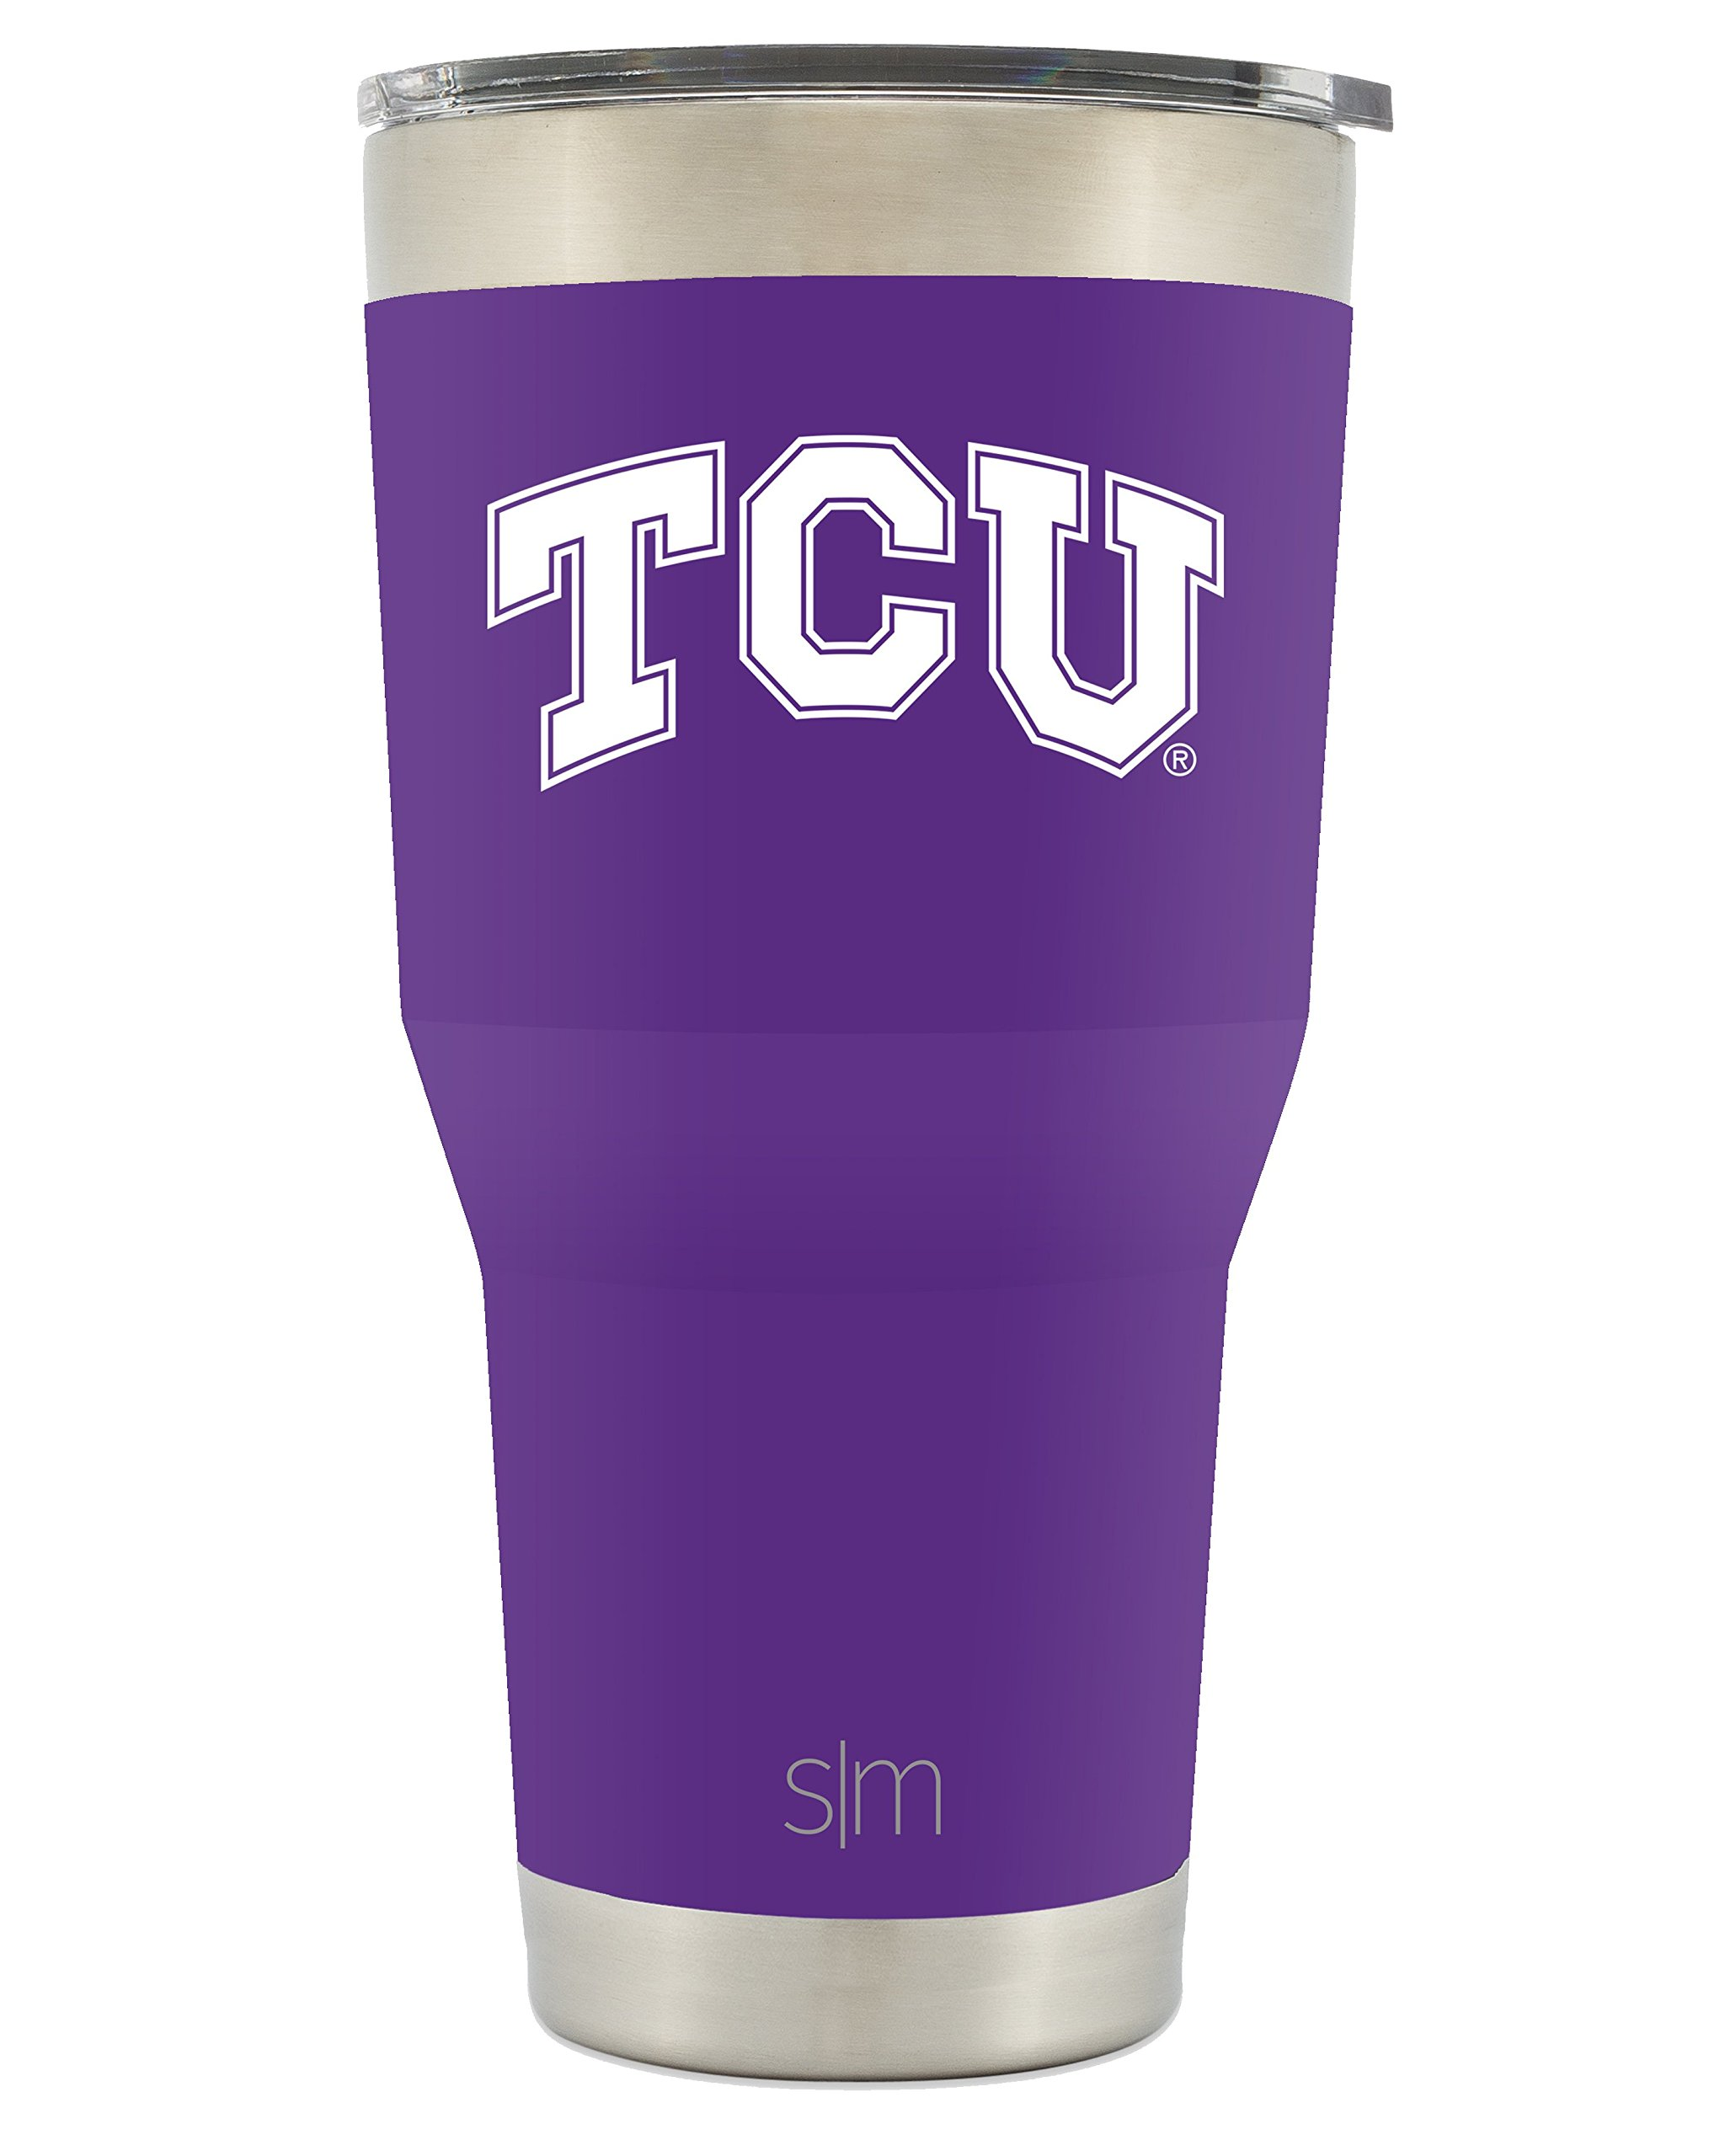 Simple Modern TCU 30oz Cruiser Tumbler - Vacuum Insulated Stainless Steel Travel Mug - Texas Christian University Horned Frogs Tailgating Hydro Cup College Flask